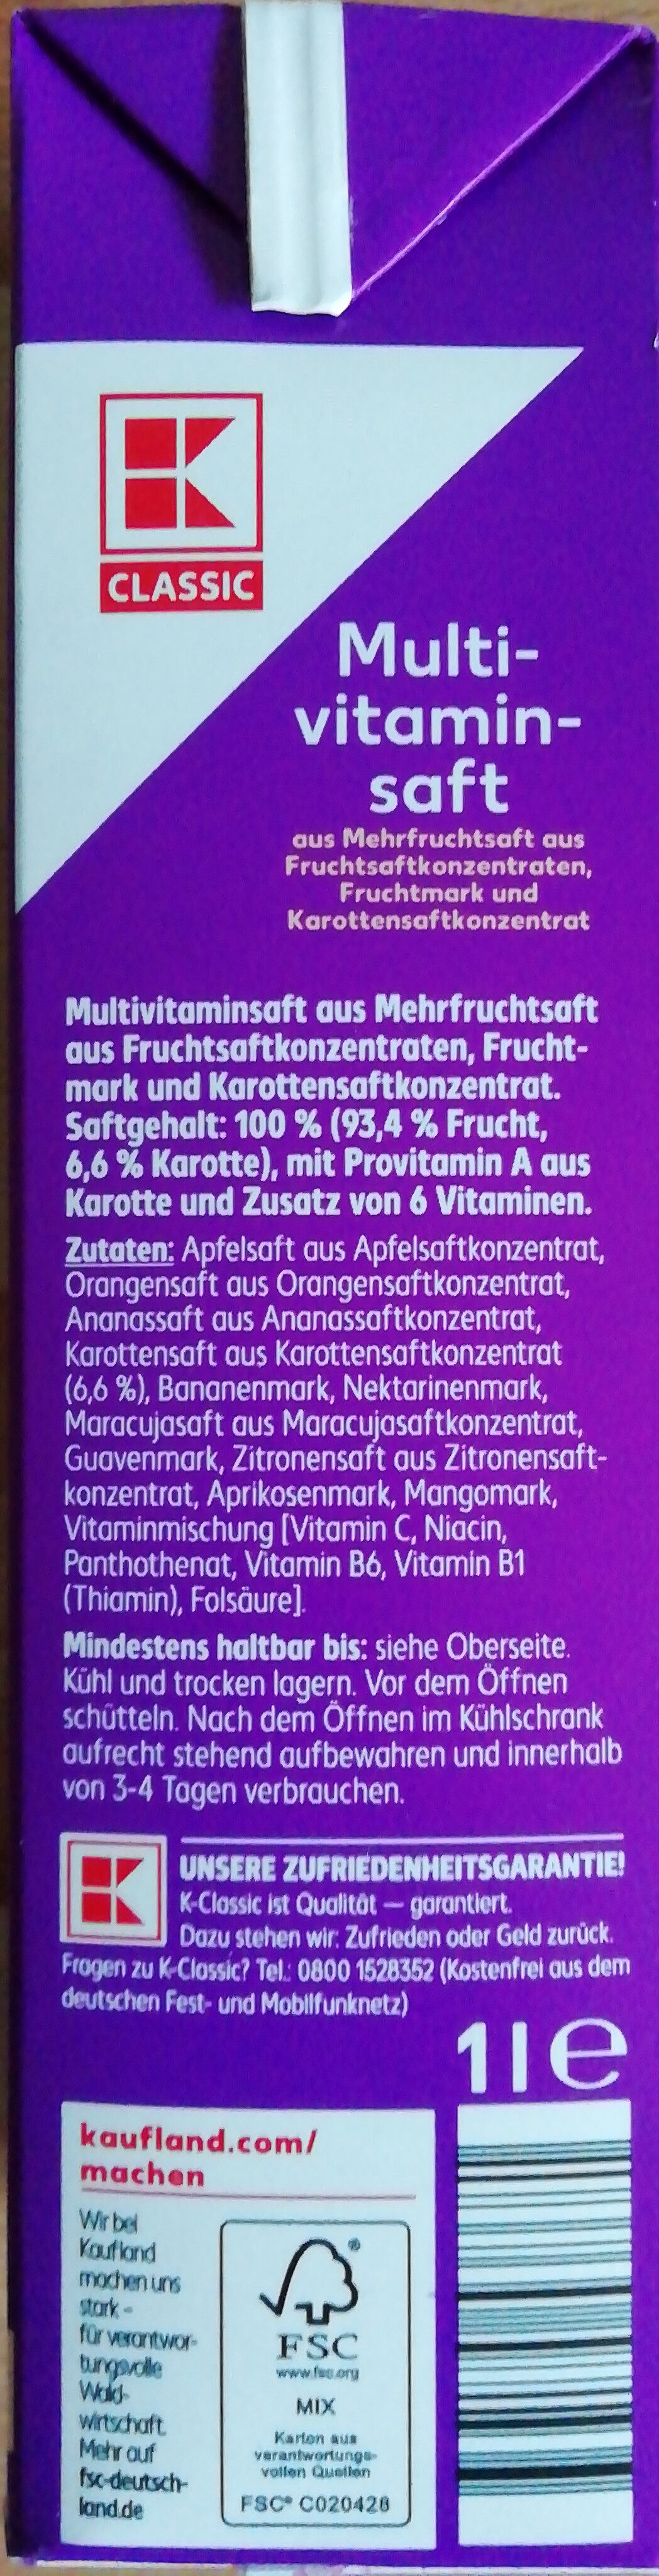 Multivitaminsaft - Ingredients